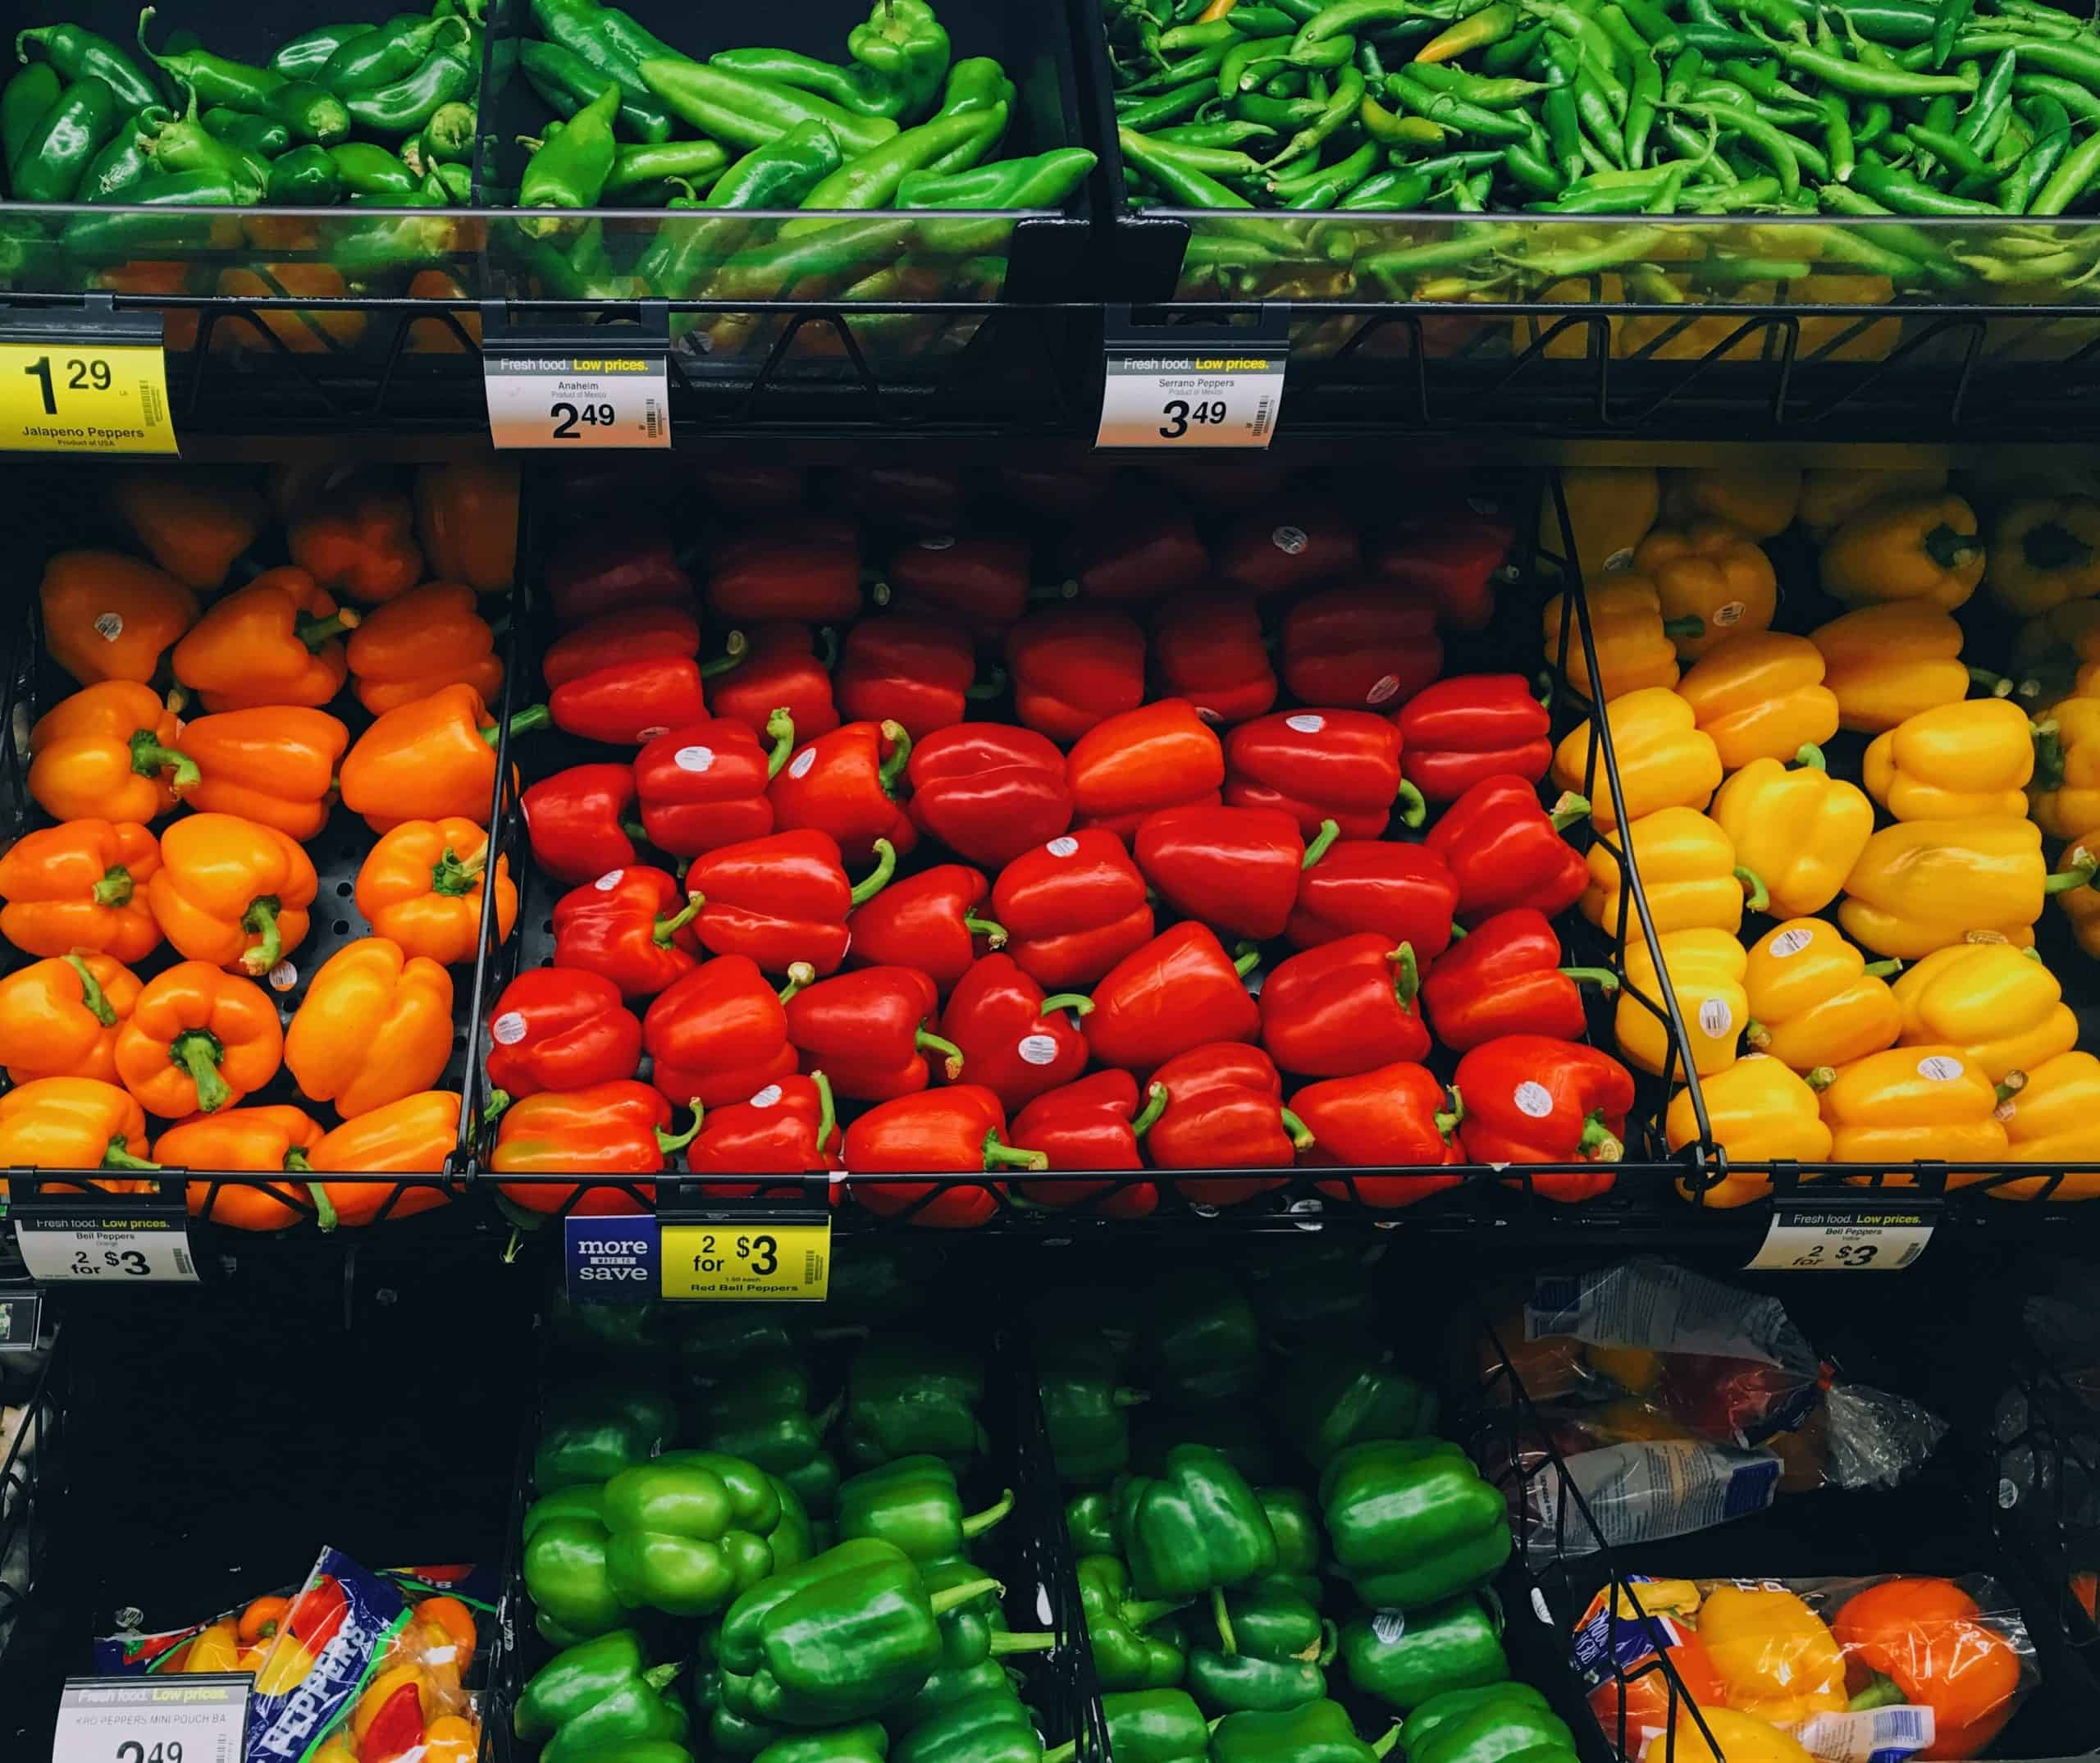 Eat healthy on a budget - Colored bell peppers on sale at supermarket